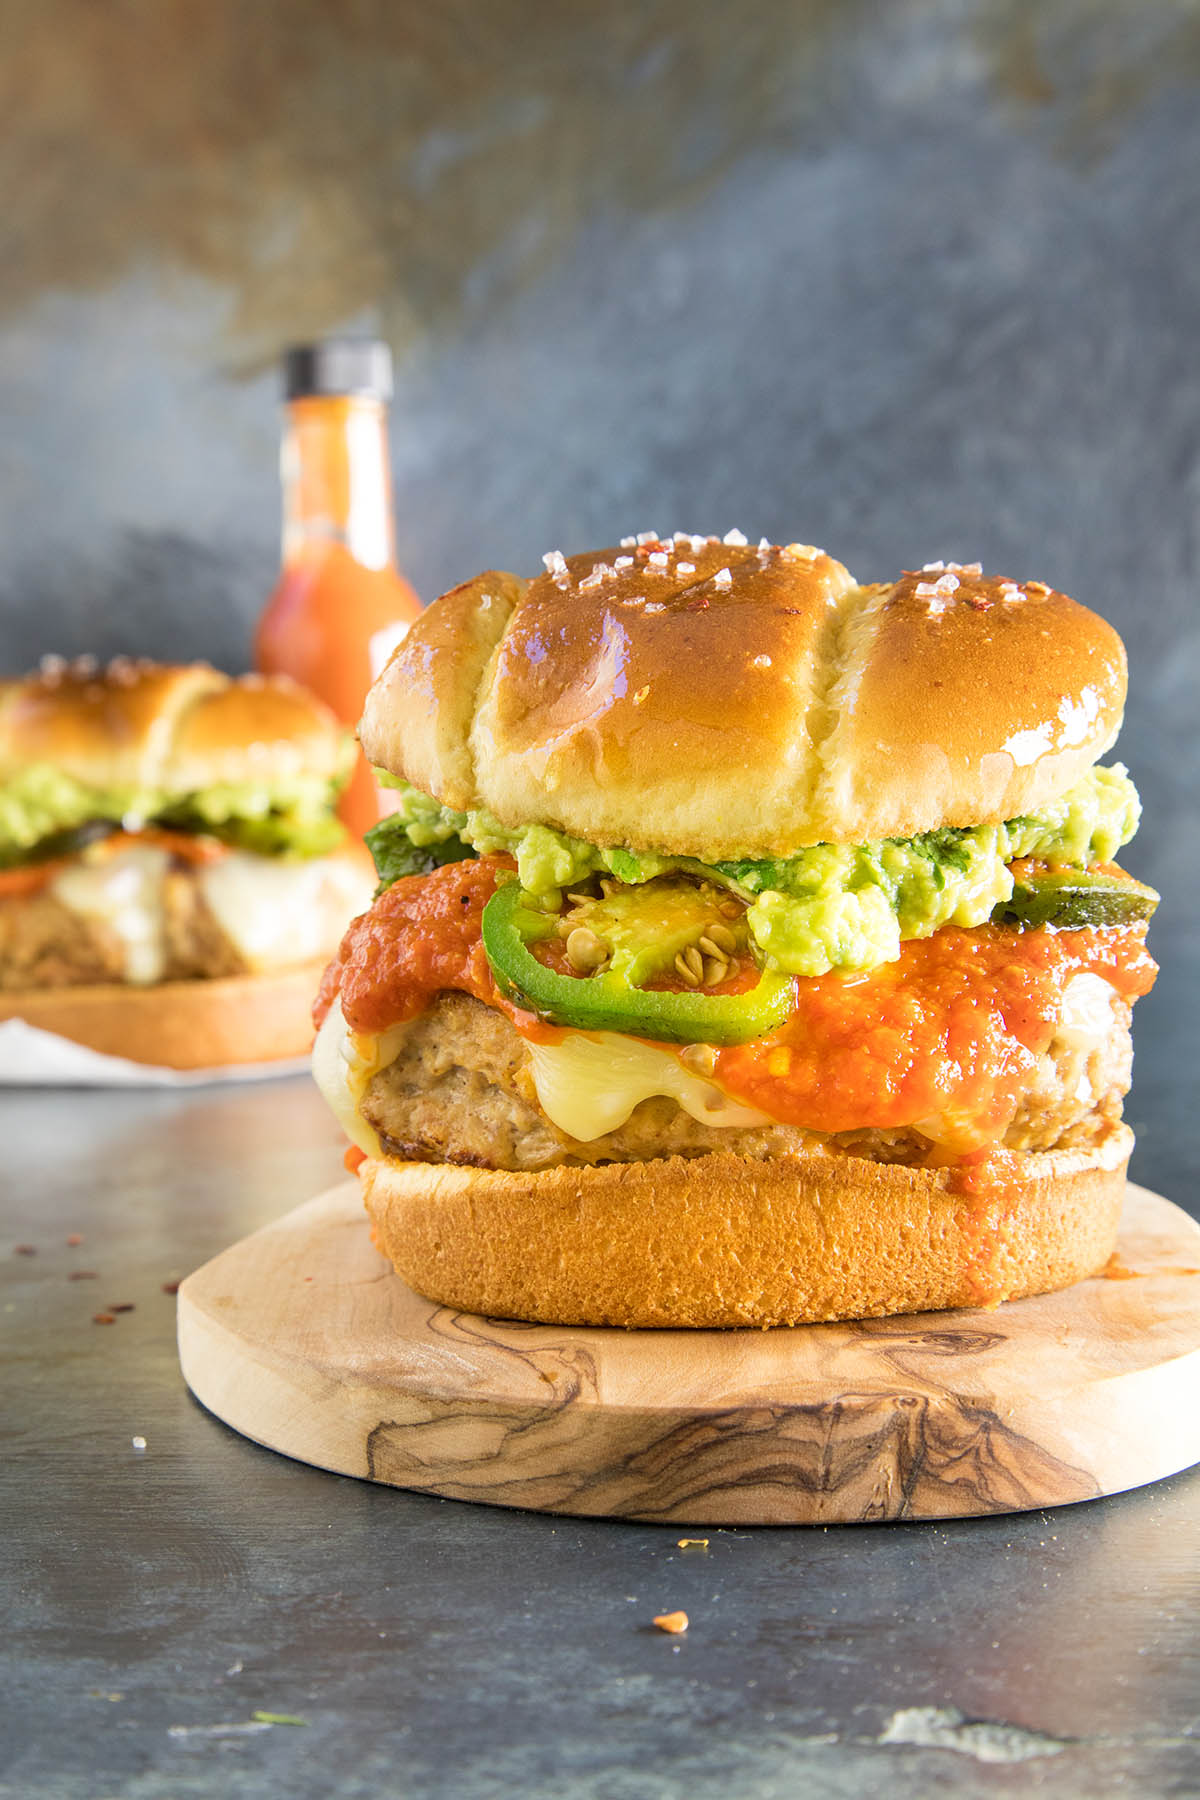 Guacamole Turkey Burgers - Dripping with Guacamole and Hot Sauce